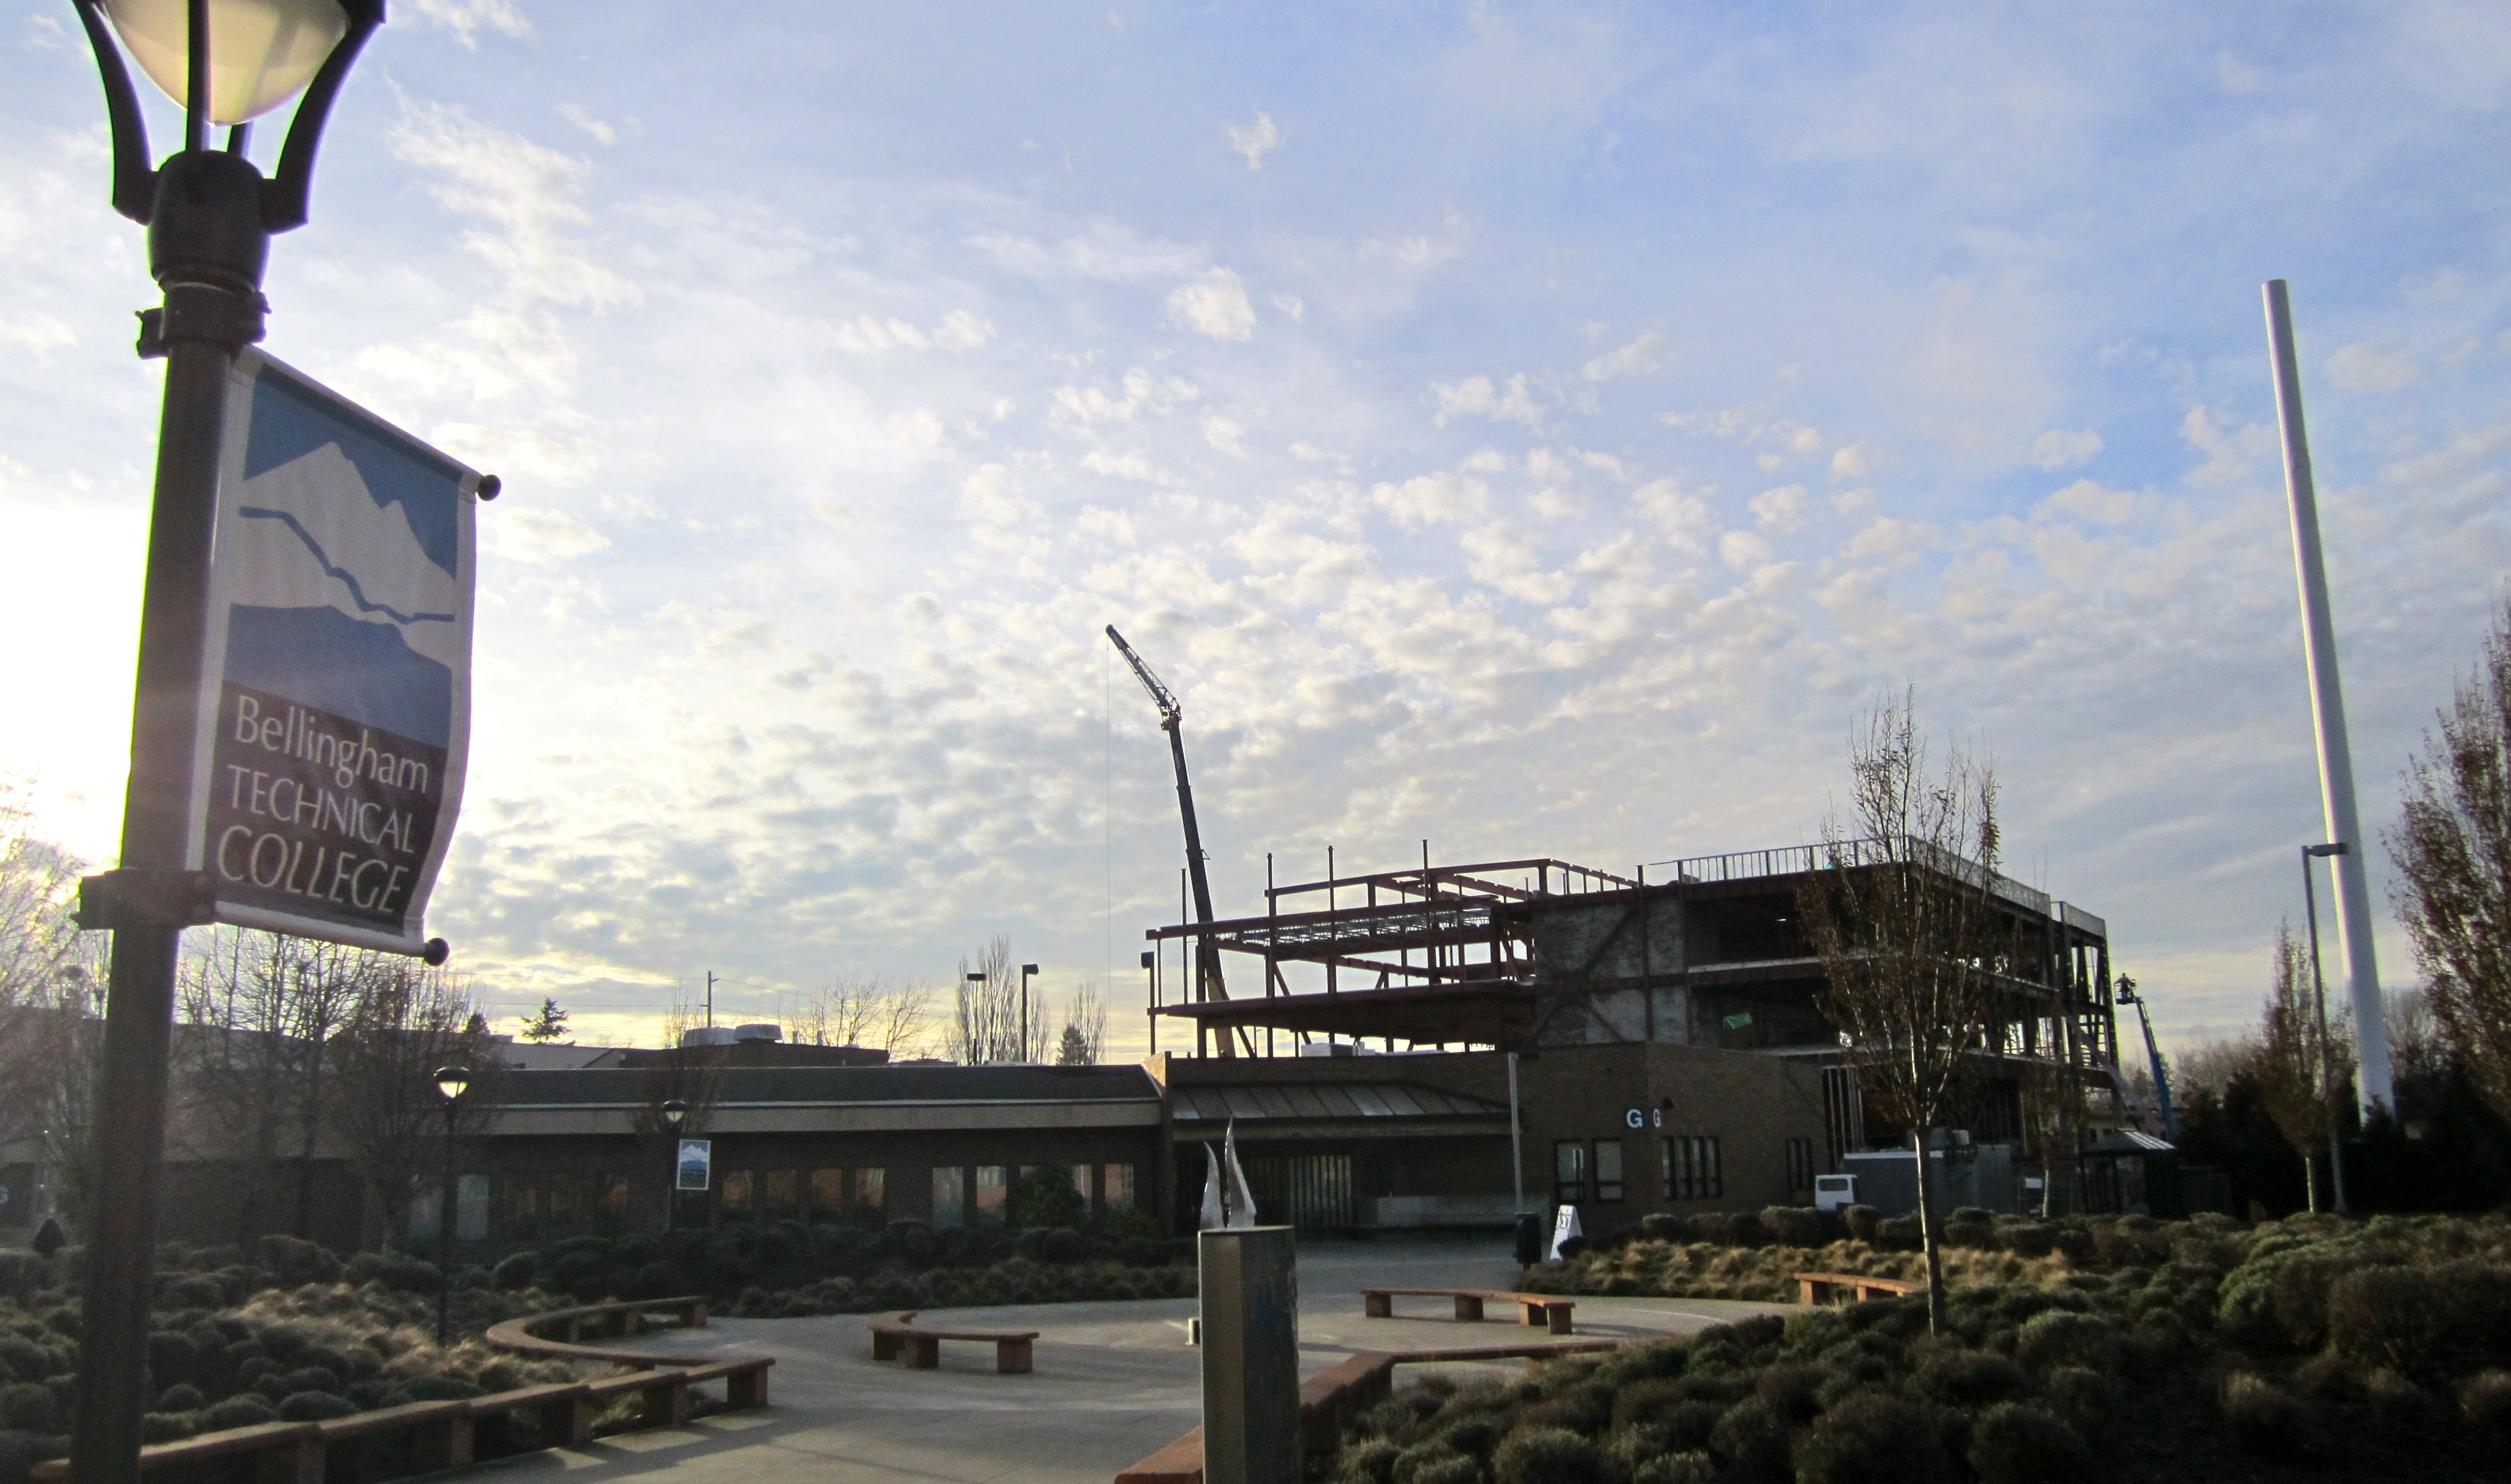 Bellingham Technical College - Campus Expansion